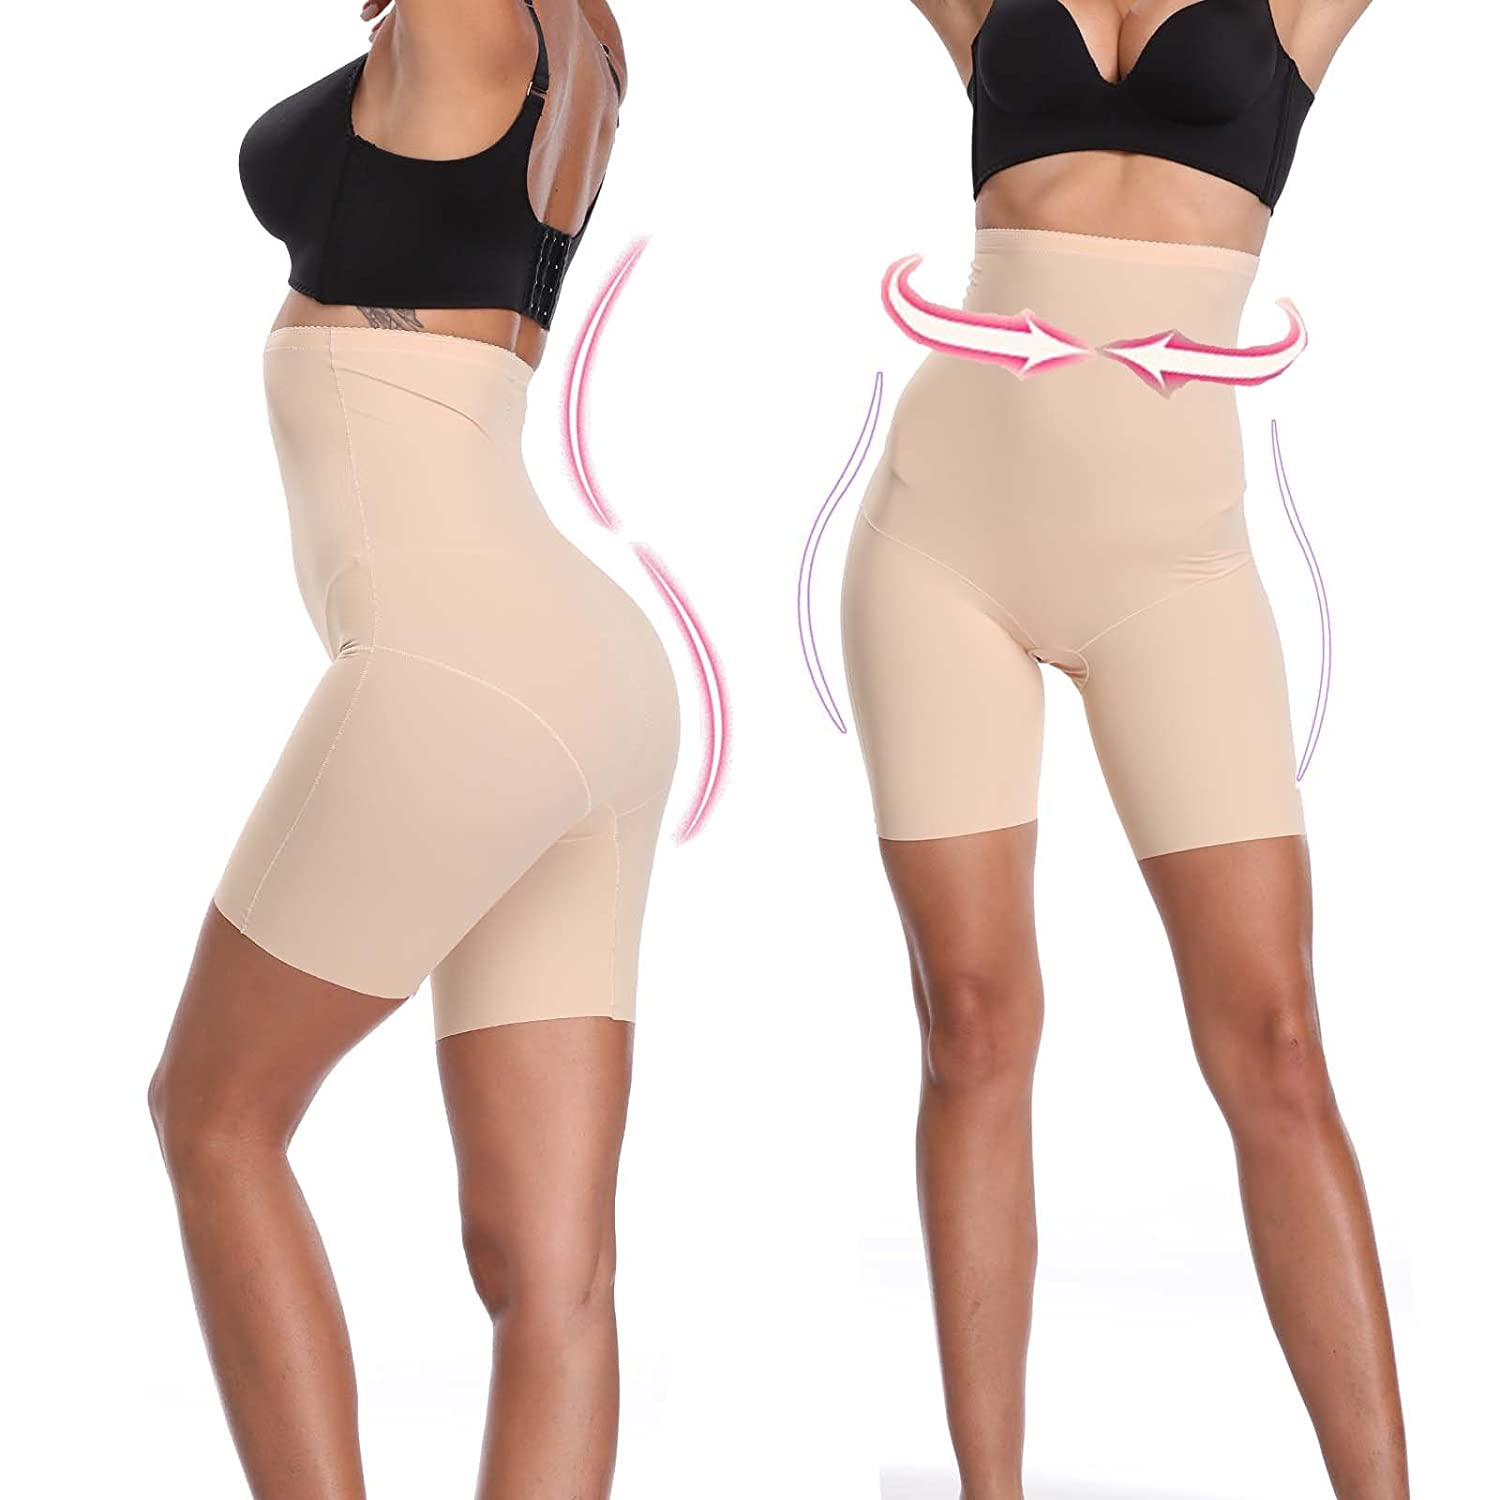 797610cb0d0ae Joyshaper Thigh Slimmer Shapewear for Women High Waisted Tummy Control  Slimming Hip Enhancer Butt Lifter Knickers Pants Panties Booty Shorts Underwear  Body ...